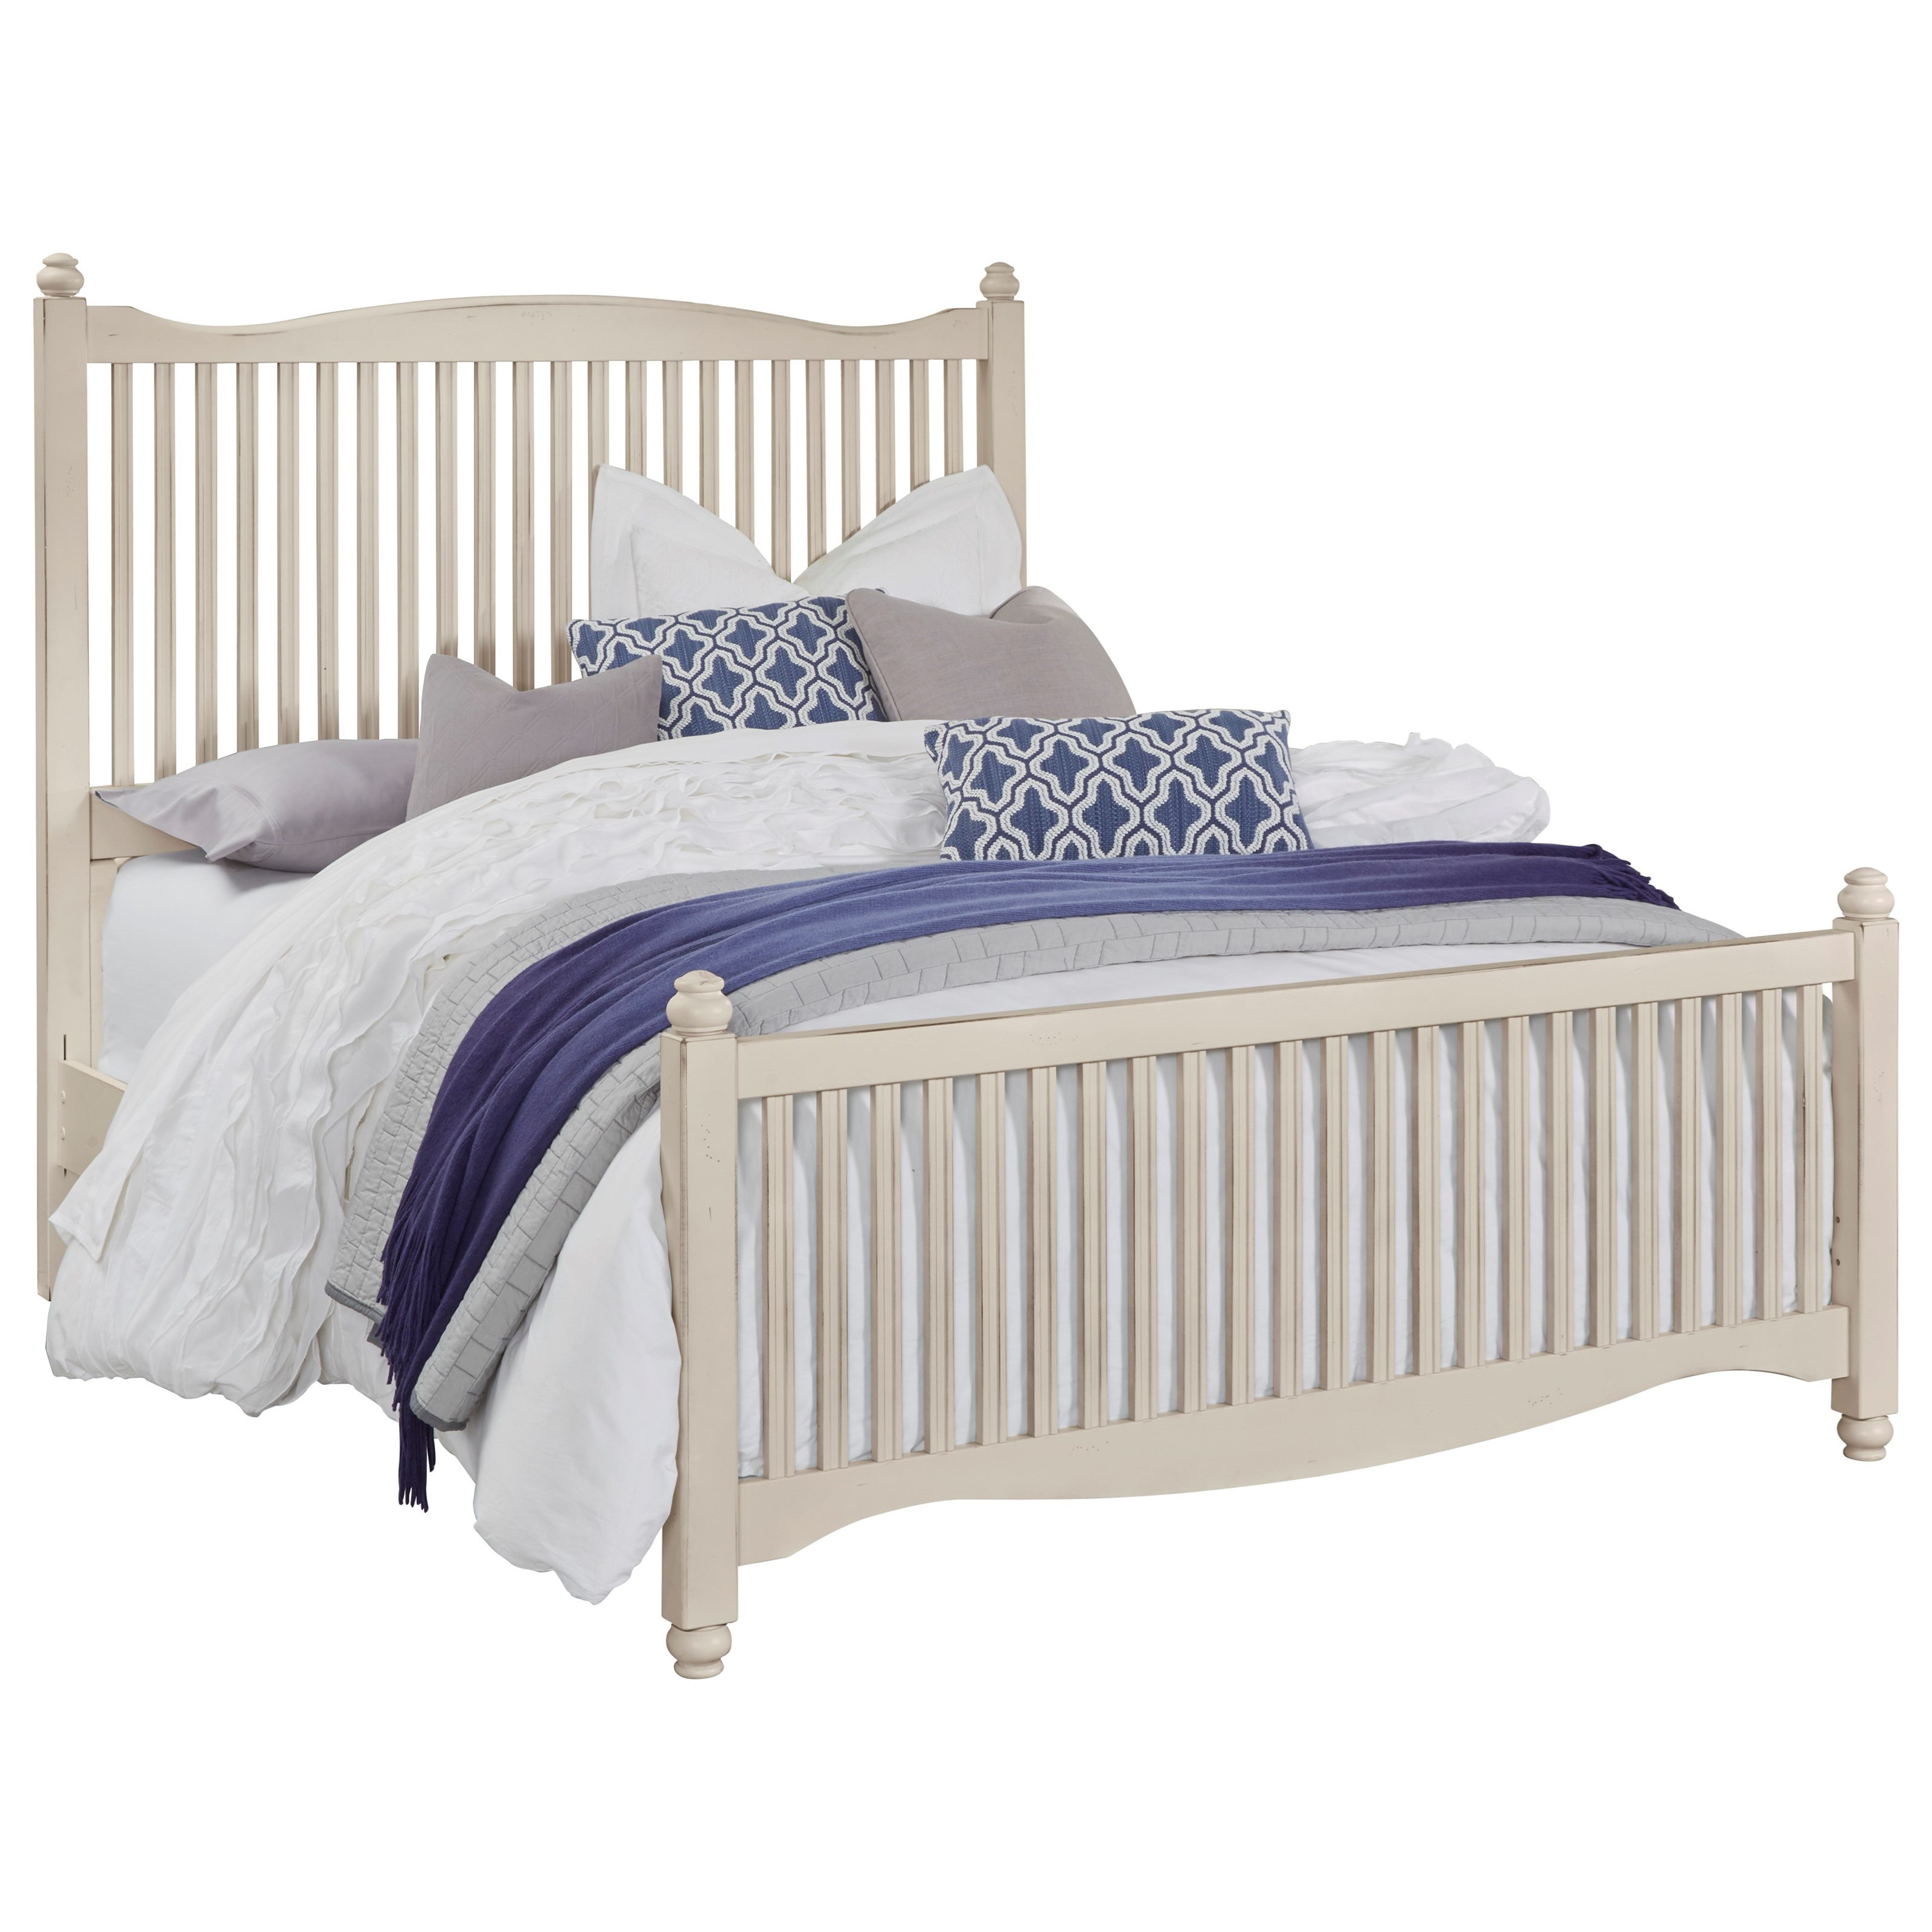 Vaughan Bassett American Maple Full Slat Bed - Item Number: 404-477+774+911